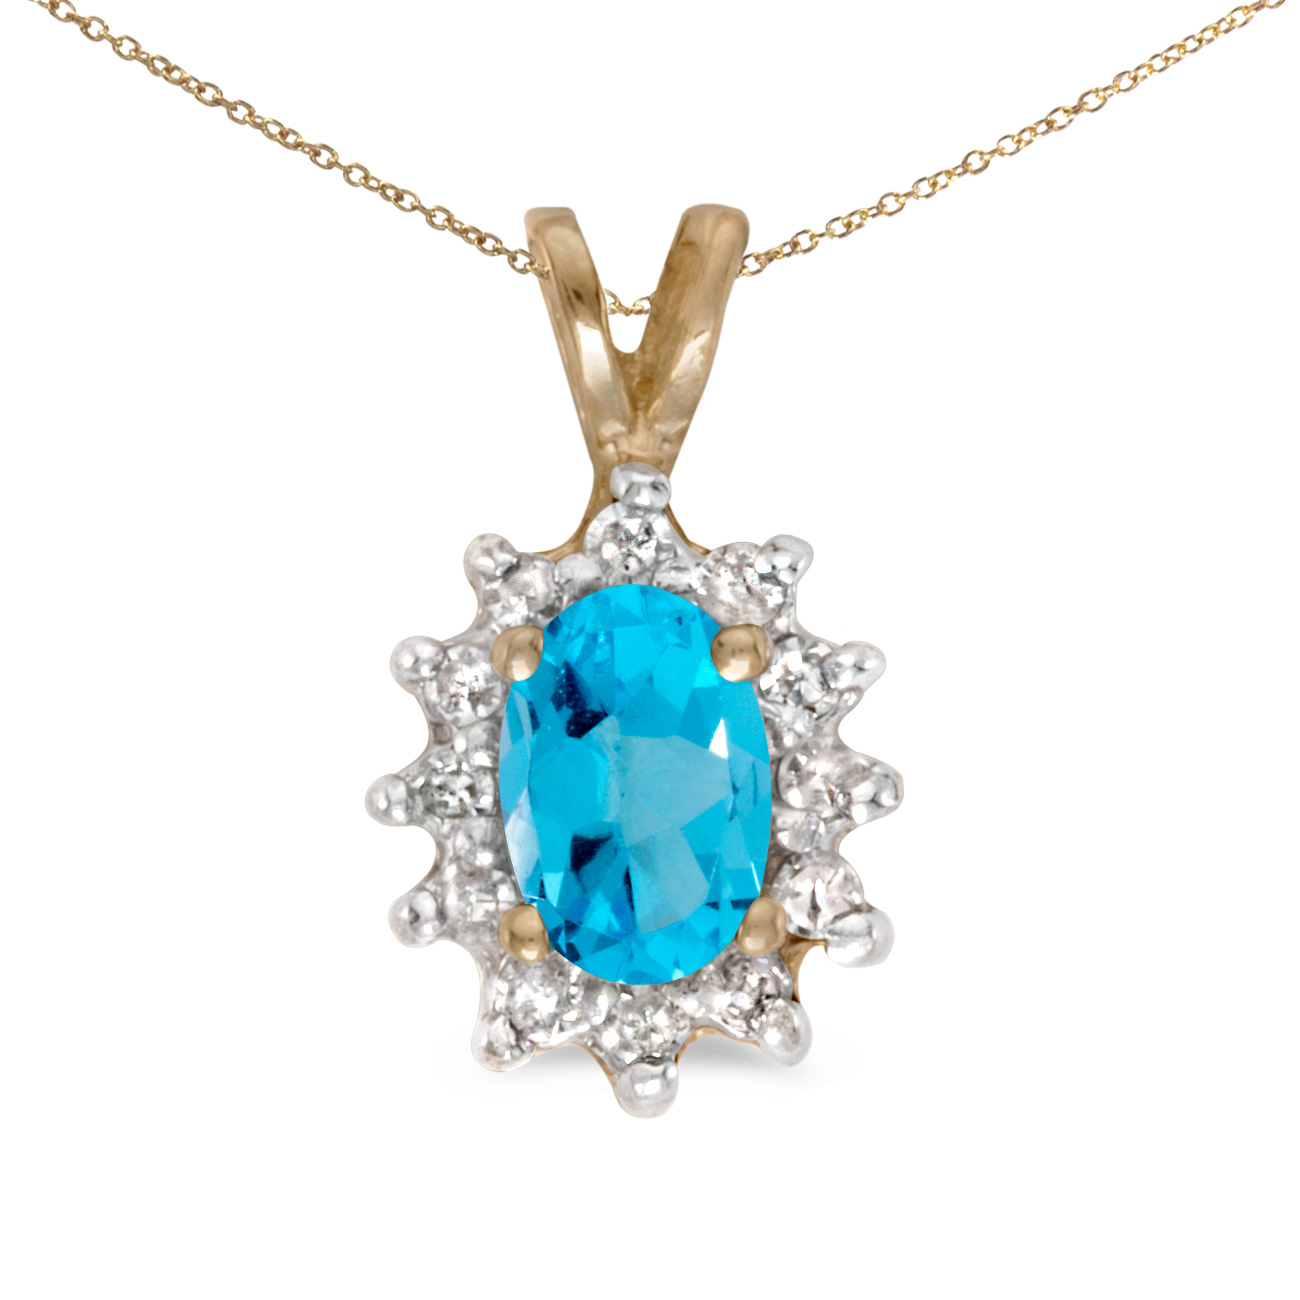 This 14k yellow gold oval blue topaz and diamond pendant features a 6x4 mm genuine natural blue t...